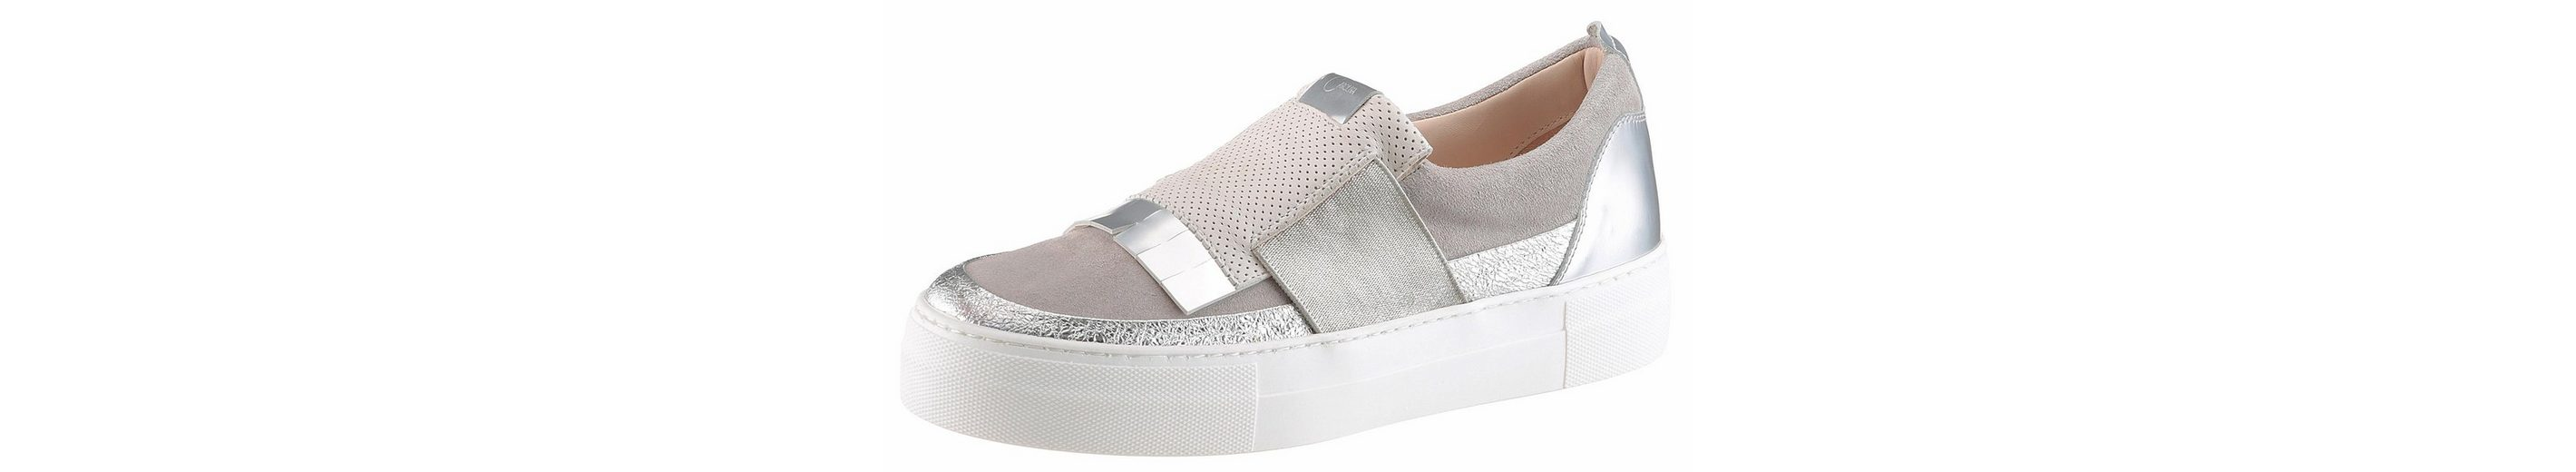 Donna Carolina Slipper, im Sneakerlook mit Metalliceinsatz